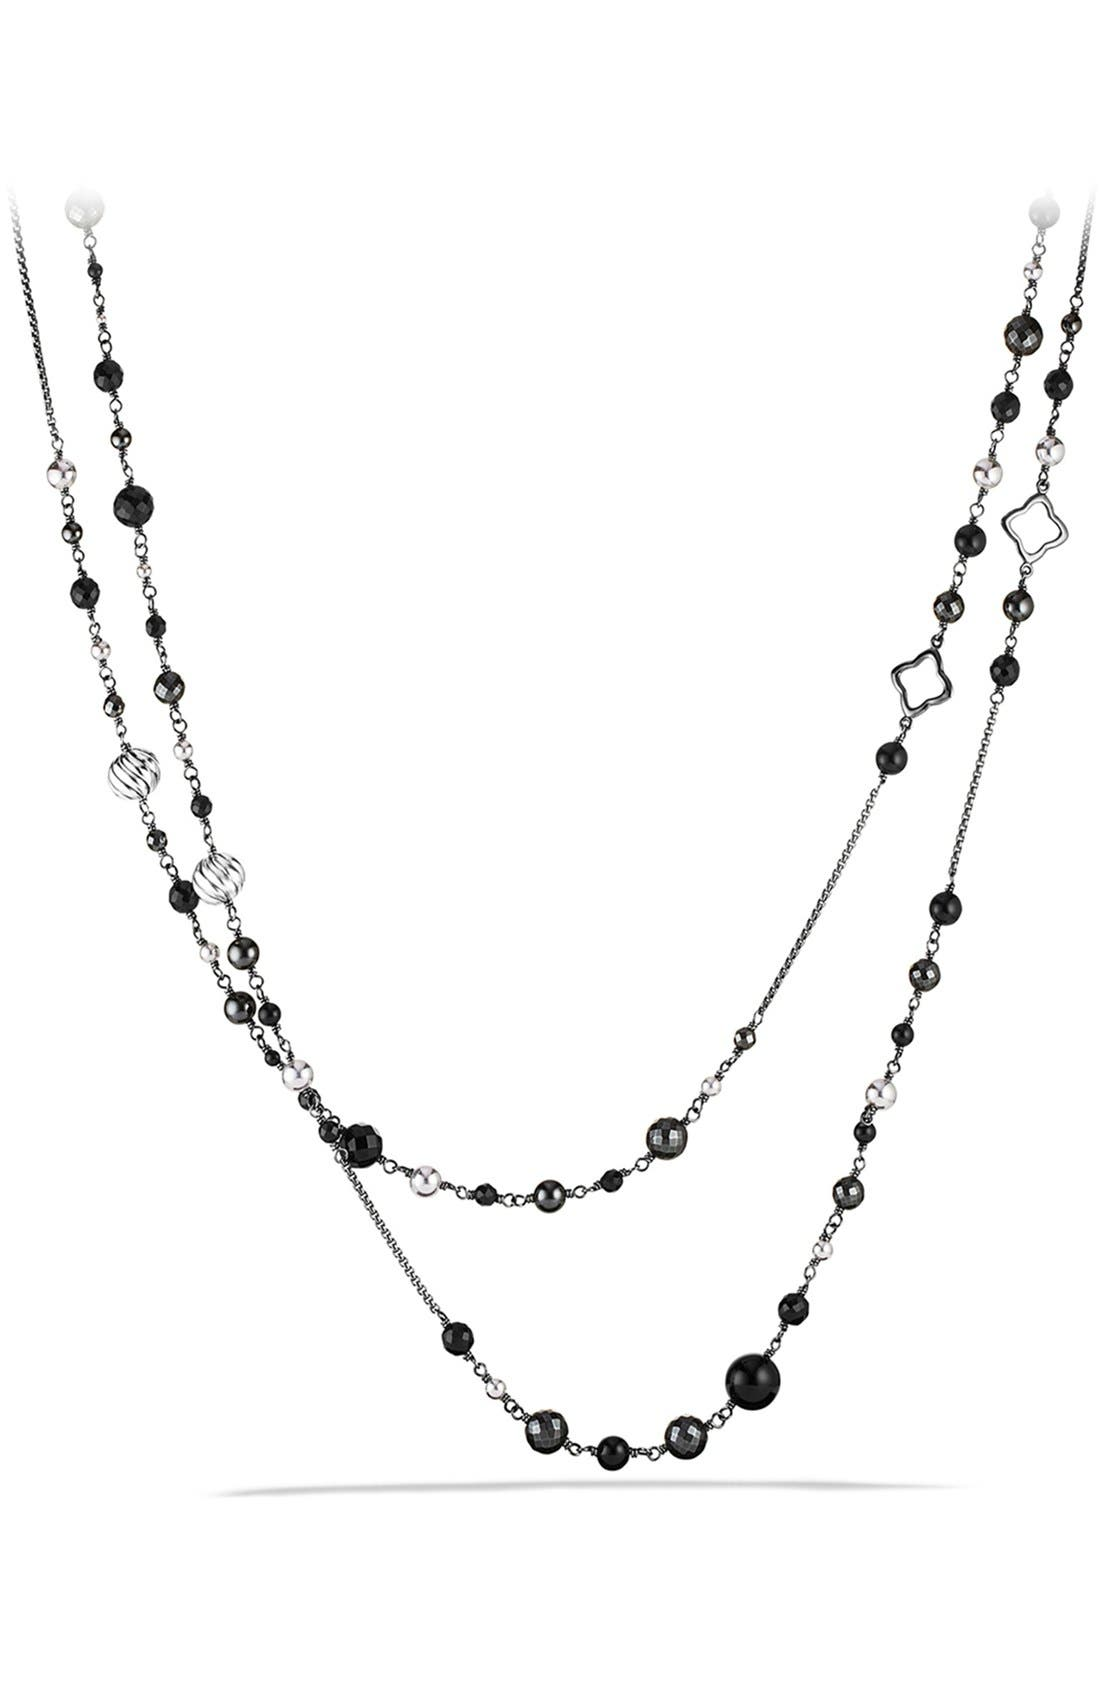 Alternate Image 1 Selected - David Yurman 'DY Elements' Chain Necklace with Black Onyx and Hematine